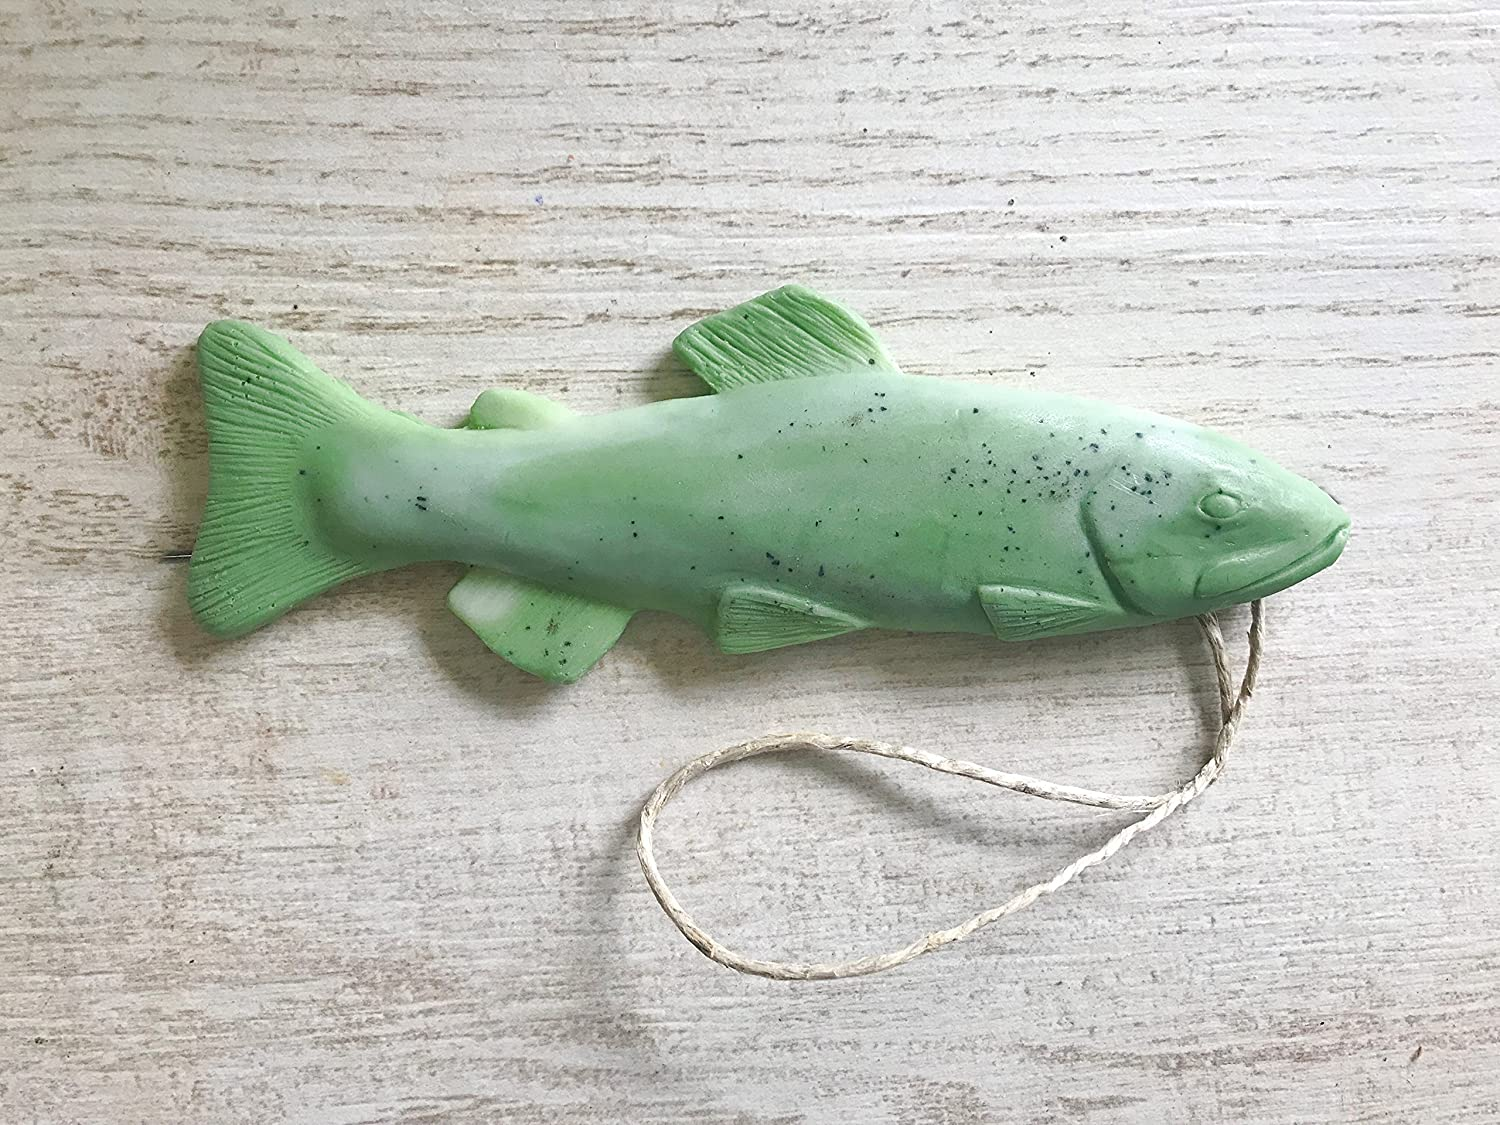 Trout Soap on a Rope by Dope on a Rope, Fishing Gifts, Gifts for Him, Green Eucalyptus Peppermint Soap, Beauty & Personal Care, Funny Gifts, Best Stocking Stuffer, Handmade Soap Bar, Novelty Gift